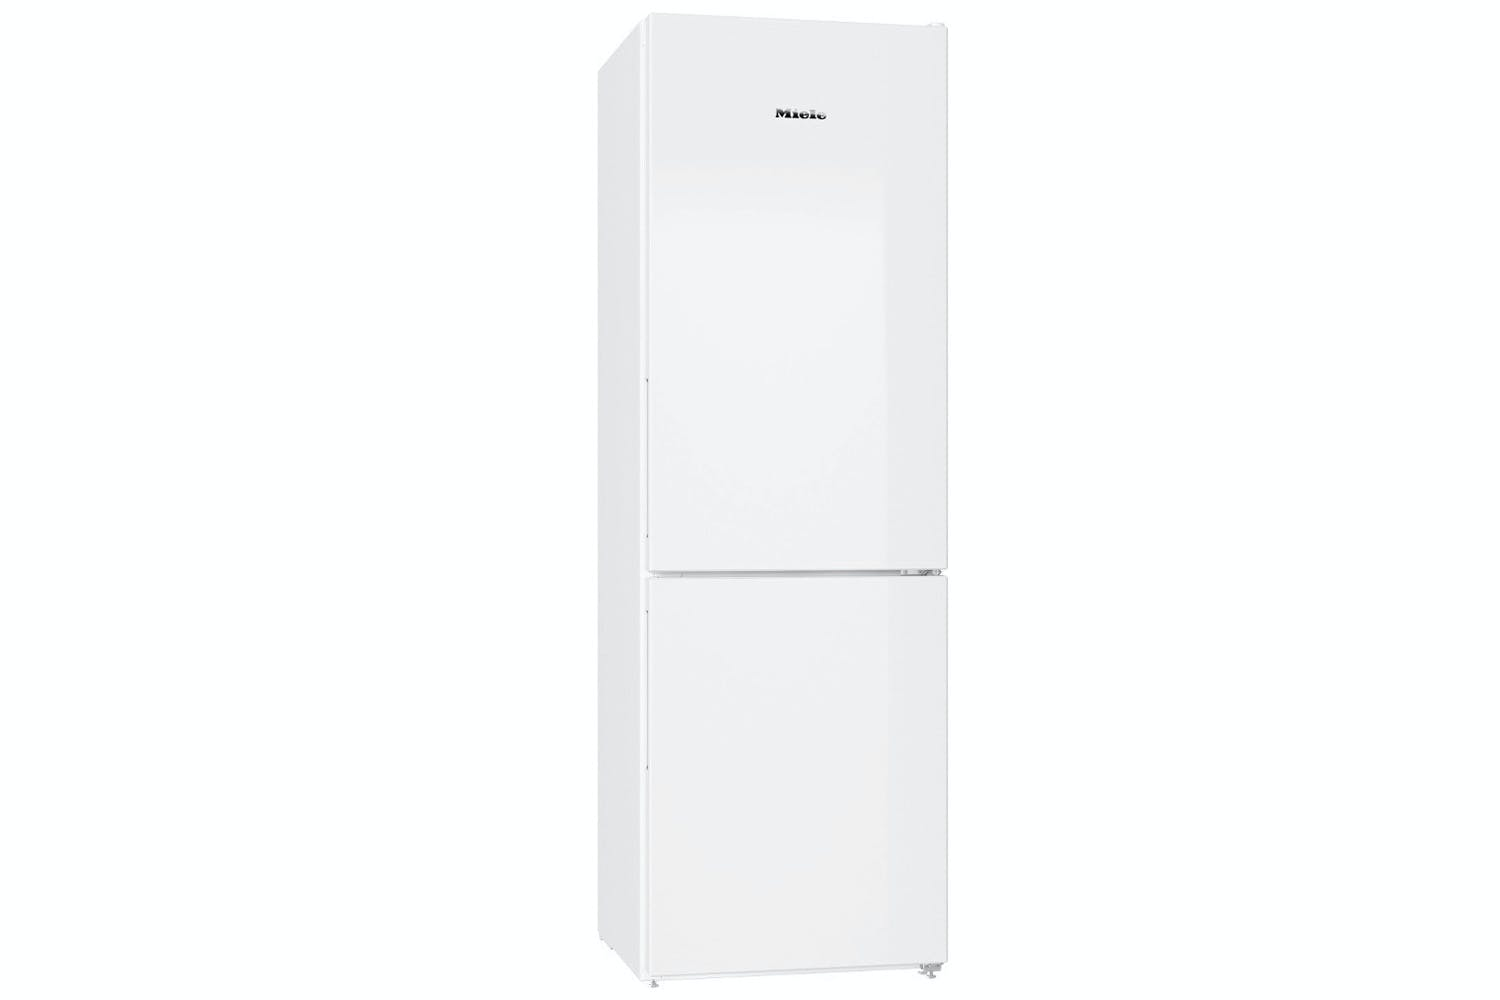 Miele KFN 28132 ws  Freestanding fridge-freezer   with Frost free and Dynamic cooling for highest convenience and versatility